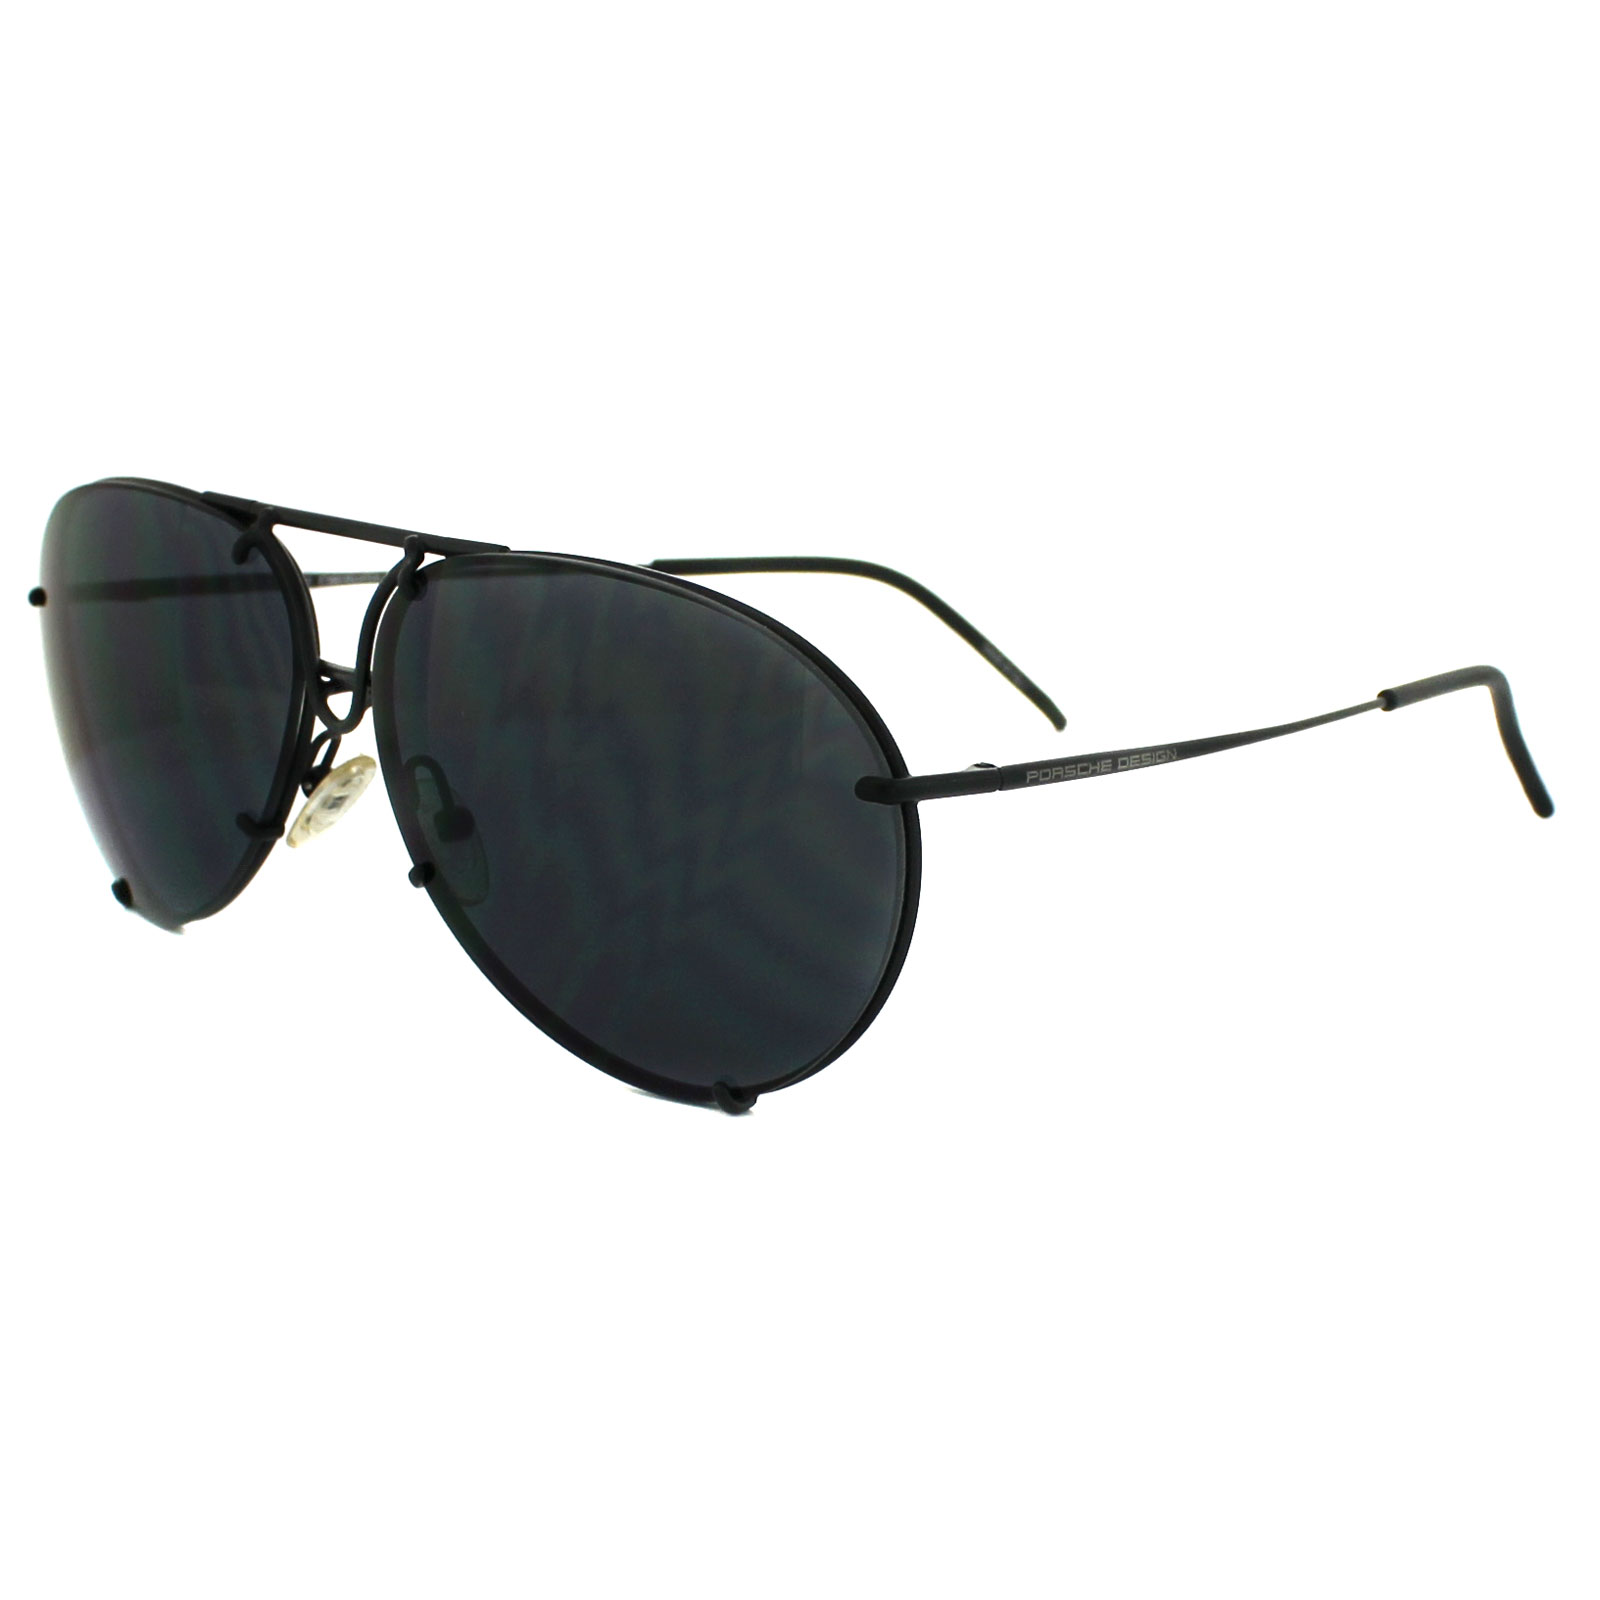 Aviator Porsche Design Sunglasses Model P8510a Www